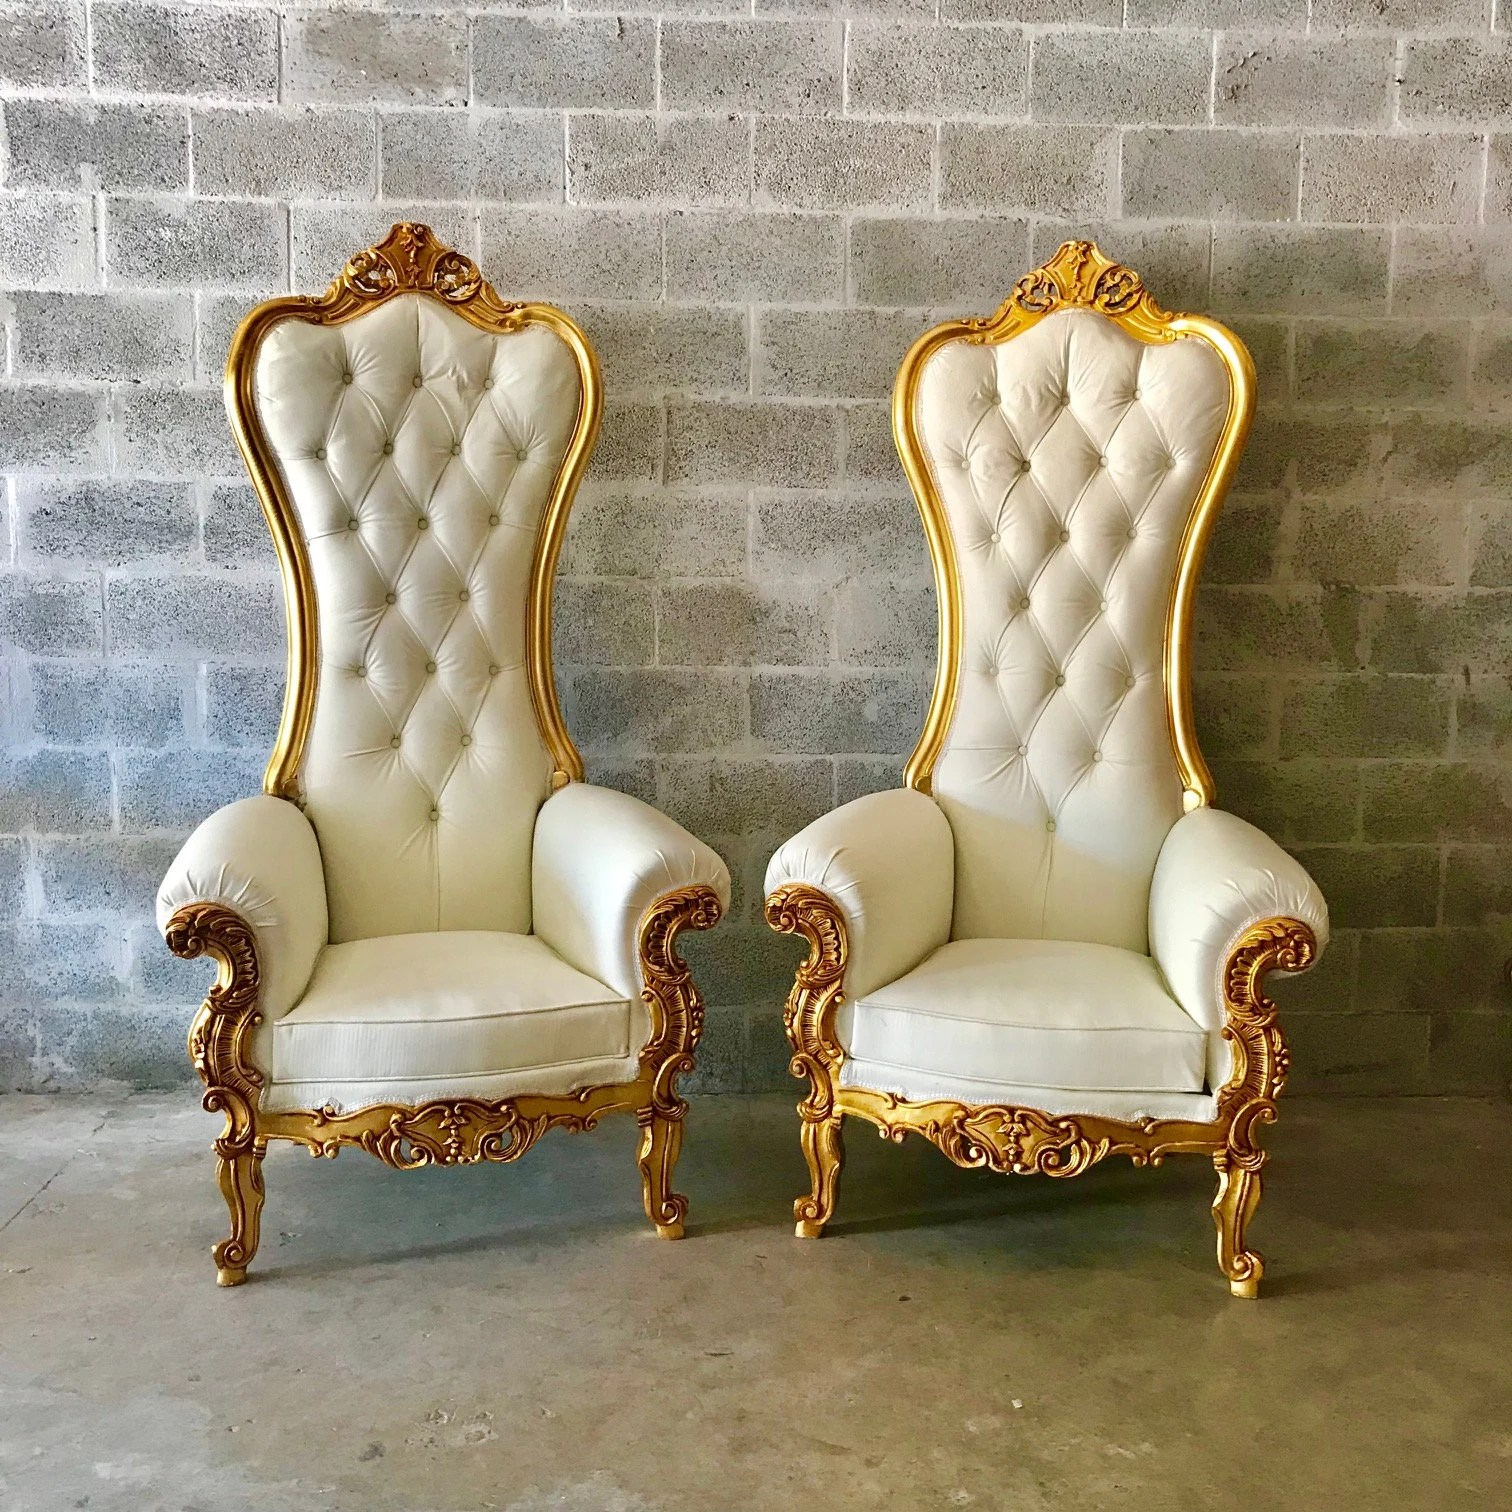 kings chair for sale steel visitors price throne etsy white leather 8 available french tufted gold rococo interior design